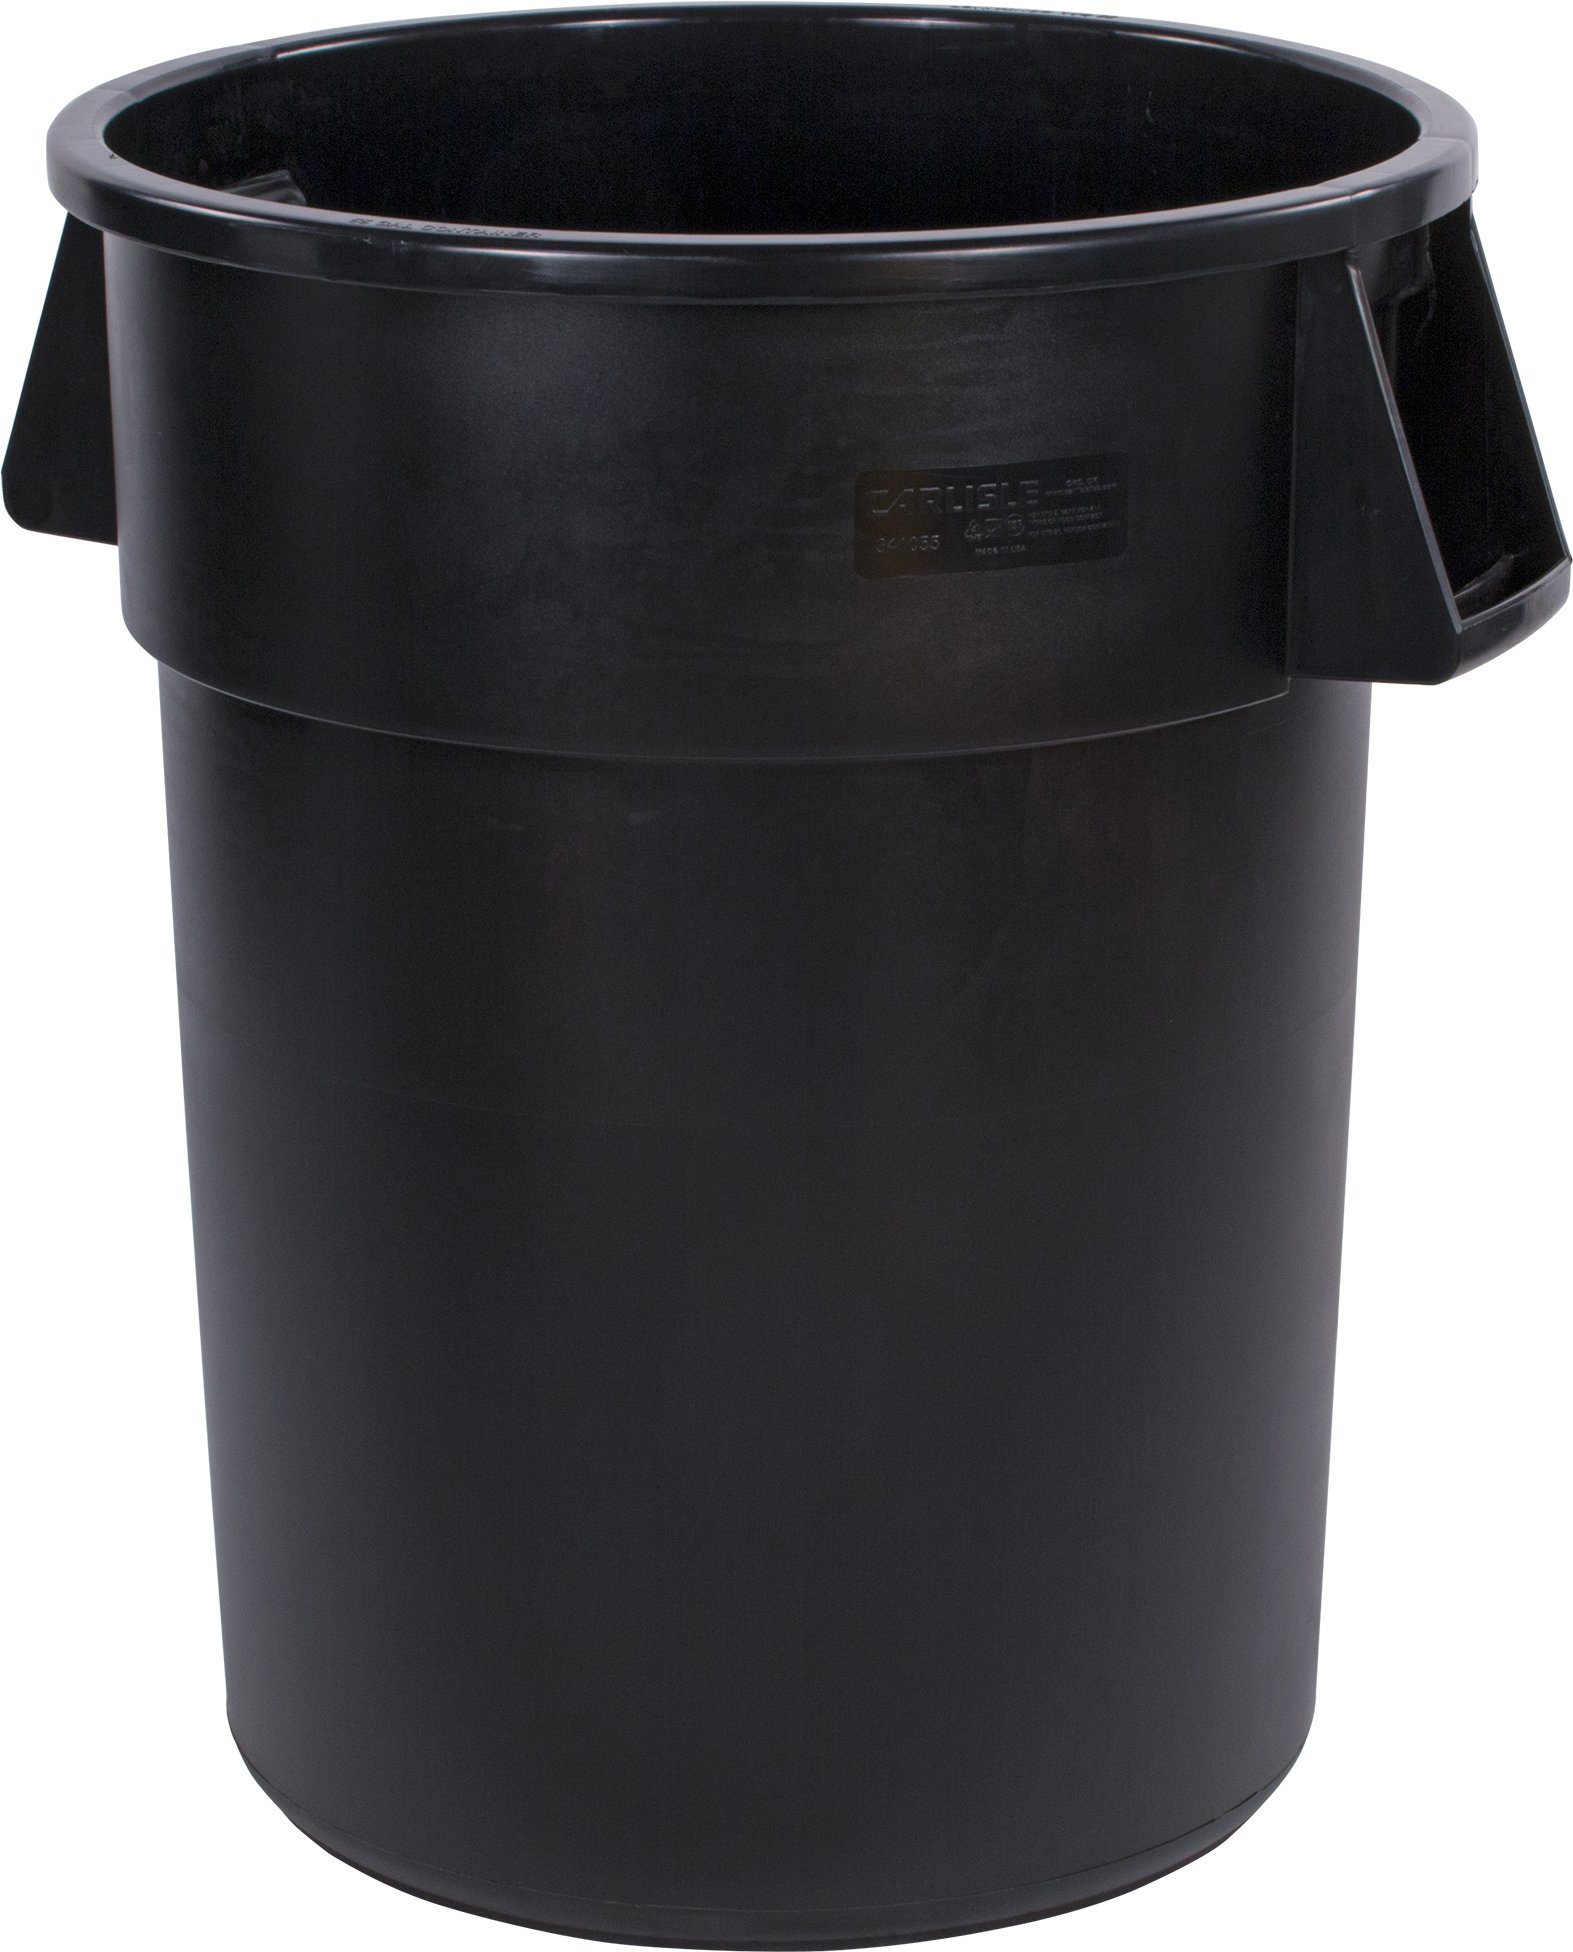 Carlisle 34105503 Bronco Round Waste Container Only, 55 Gallon, Black by Carlisle